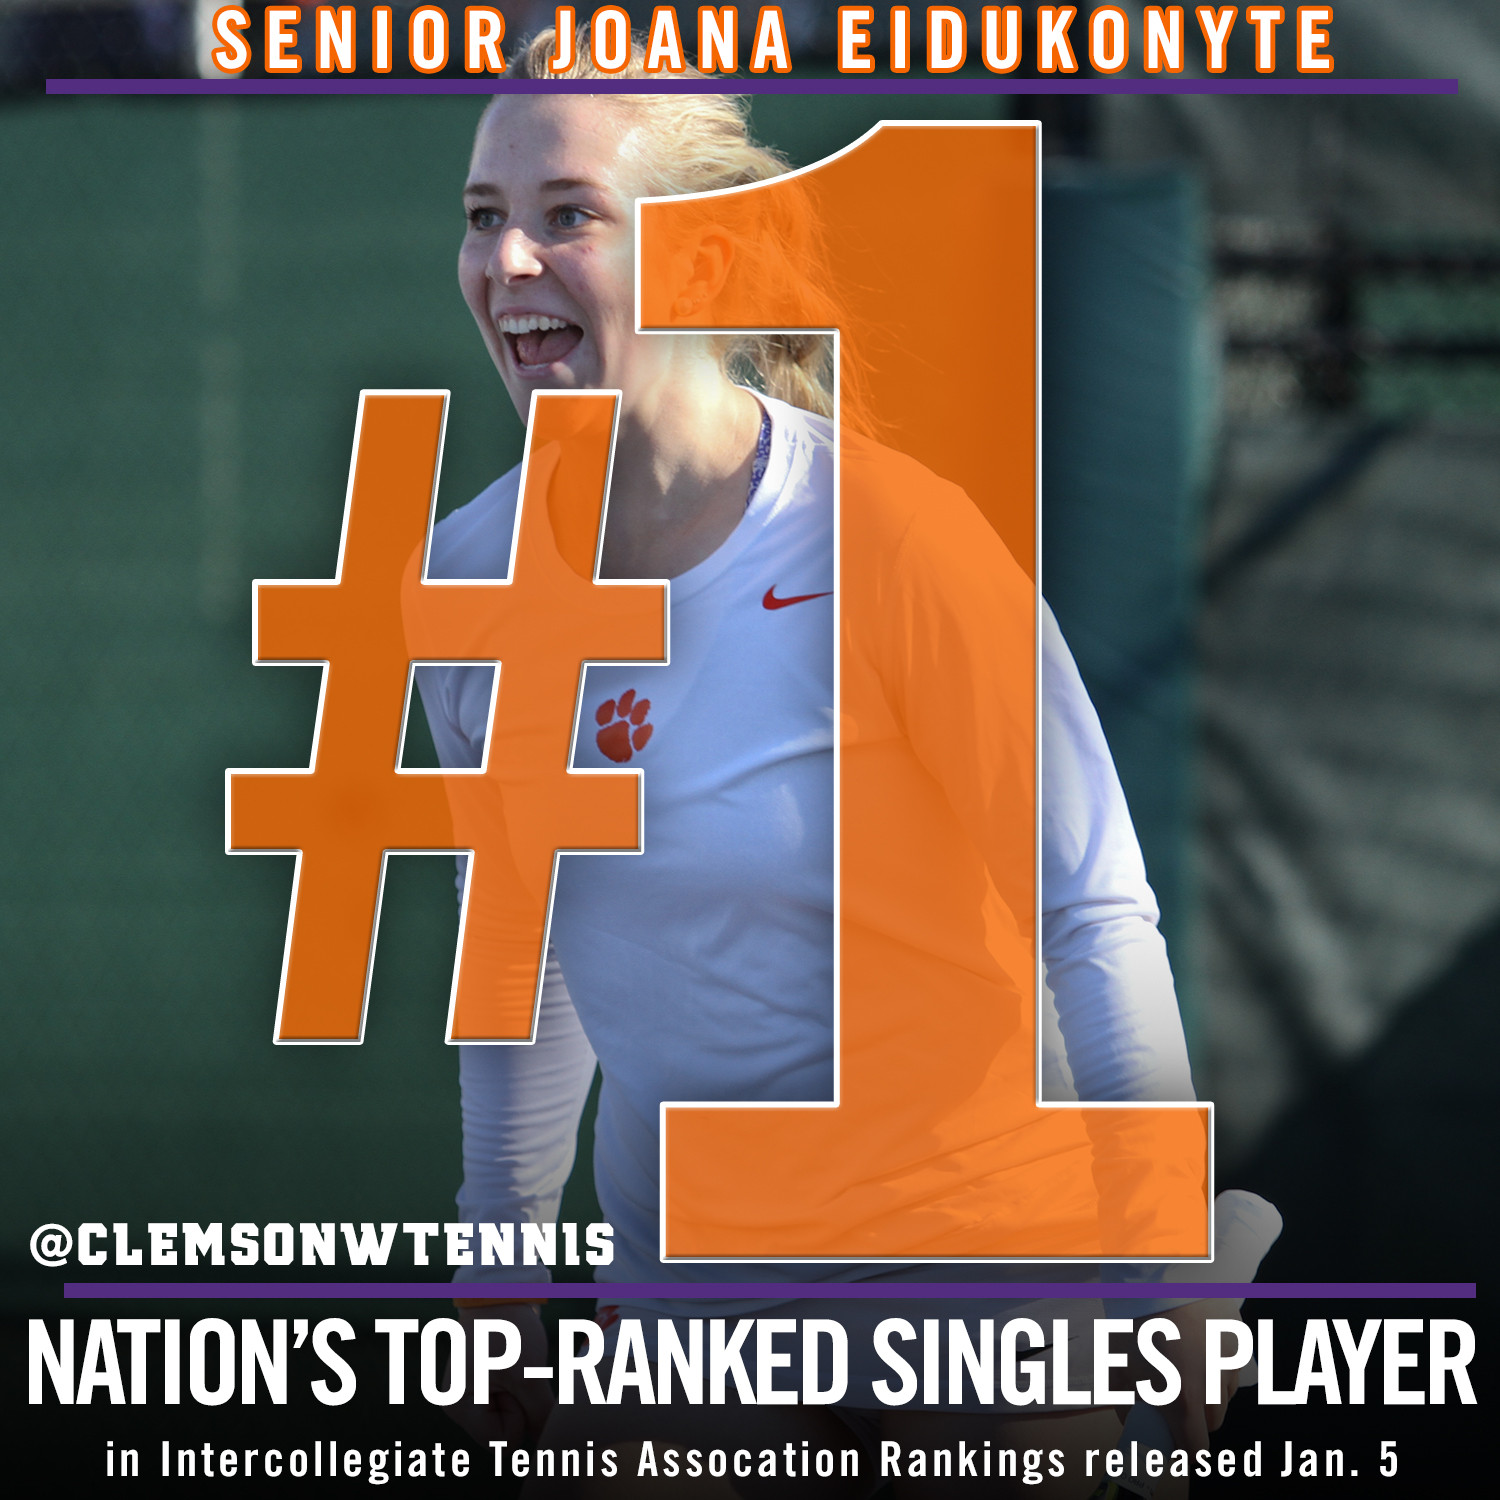 Eidukonyte Ranked No. 1 Nationally in Singles, Tigers Ranked 20th as a Team